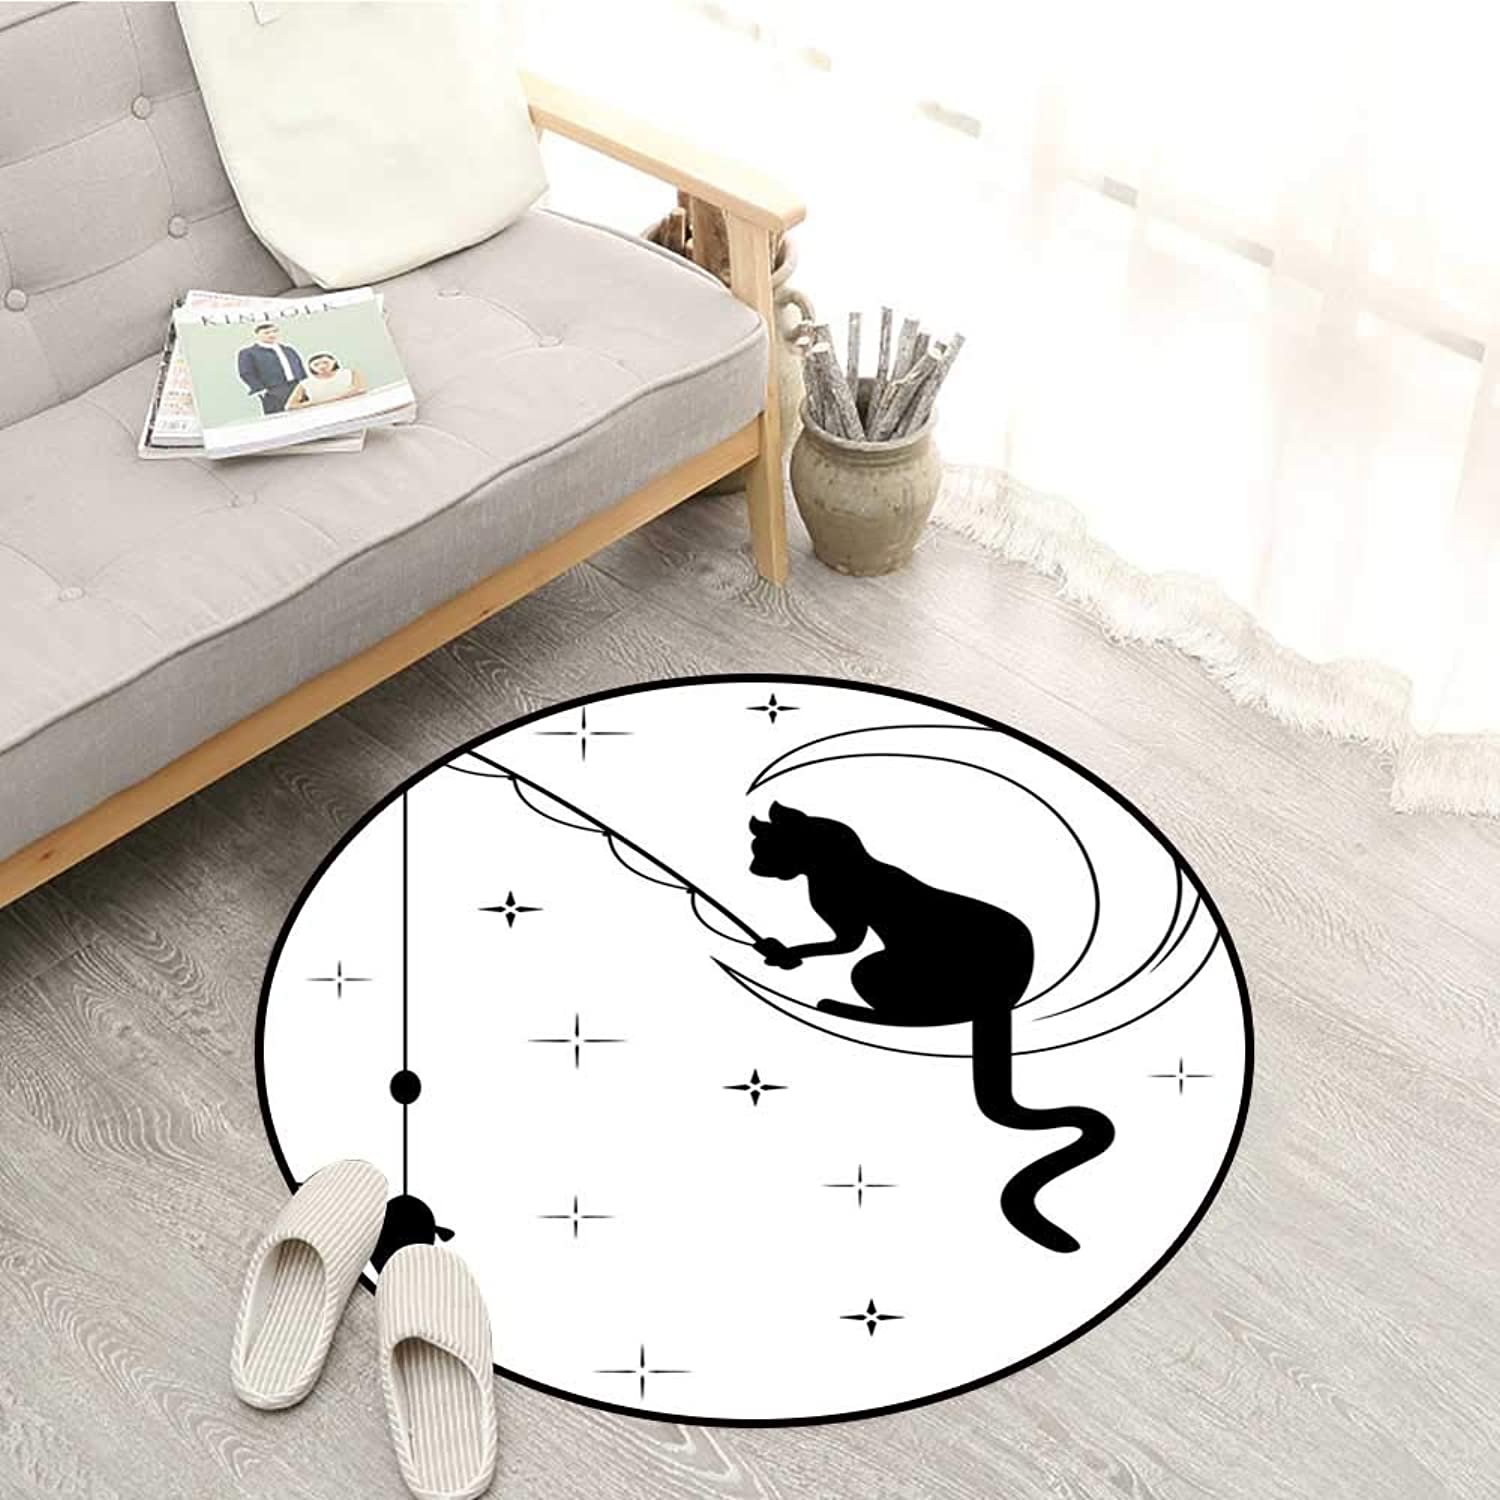 Modern Non-Slip Rugs Cat Fishing with Long Tail Sitting on The Moon Among Starry Sky Humor Sketch Art Sofa Coffee Table Mat 4'3  Black White